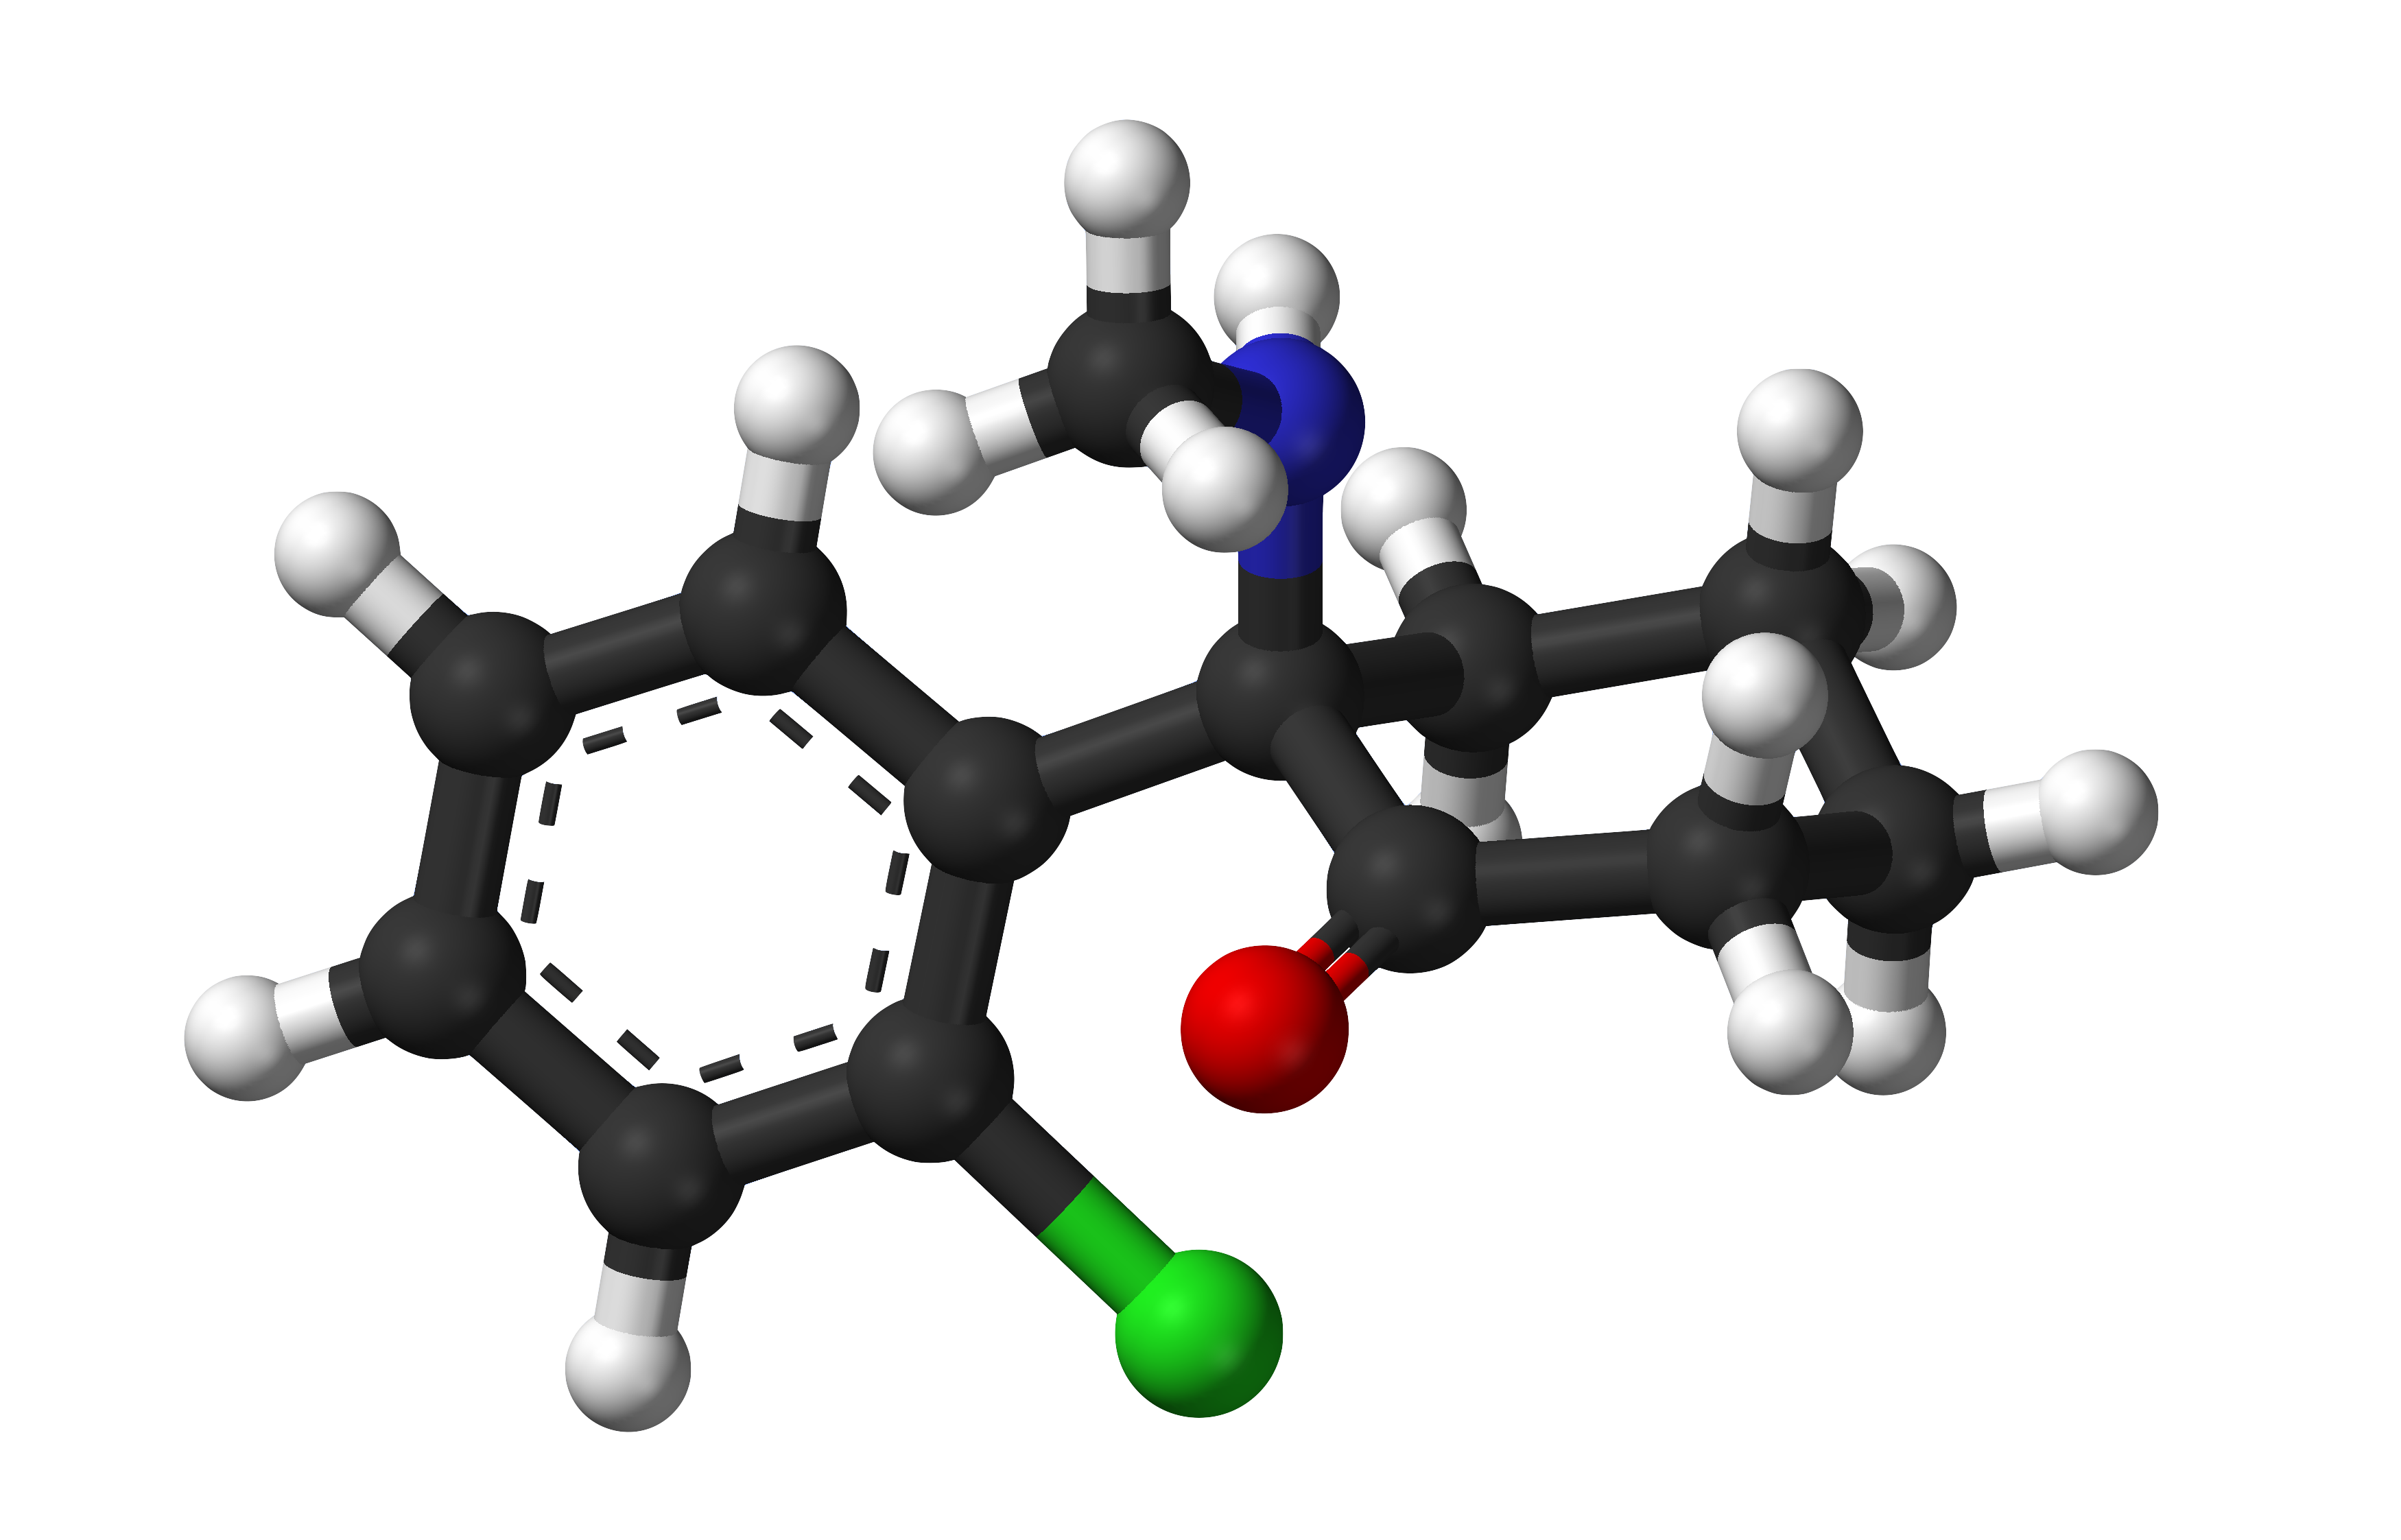 File:R-ketamine-3D-balls.png - Wikimedia Commons